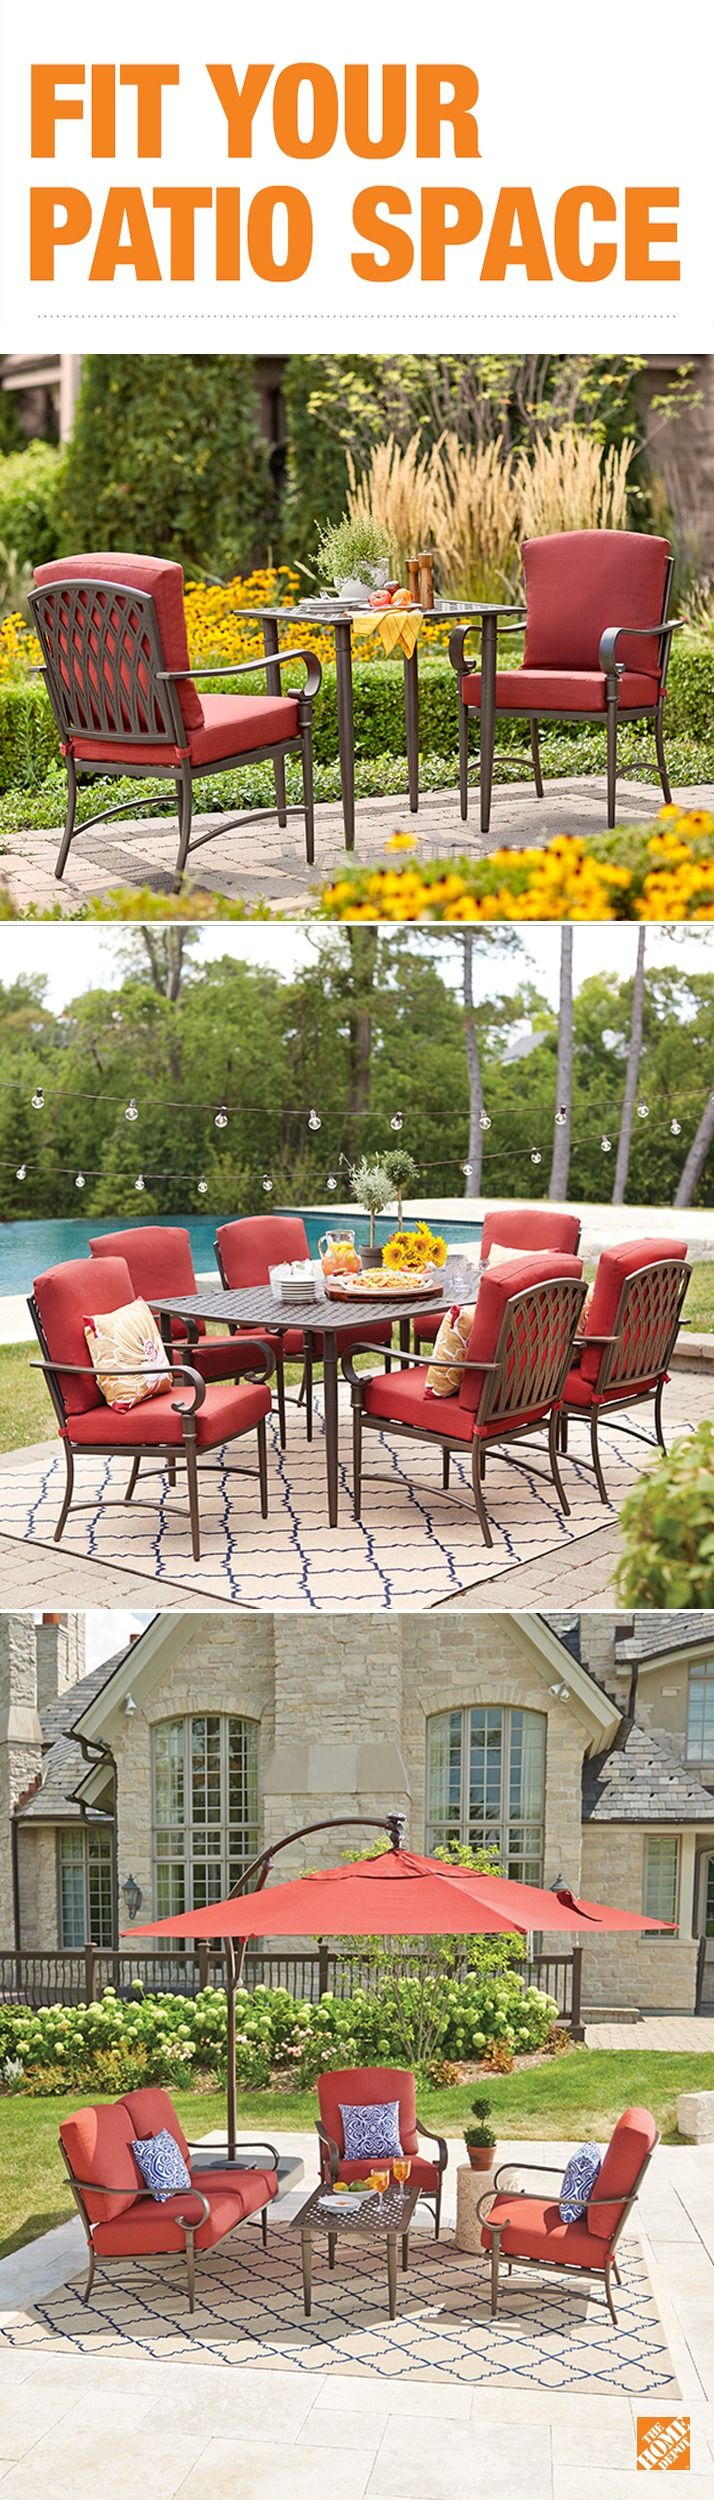 Choose A Patio Set That Fits Your Style And Your Space. The Oak Cliff Looks